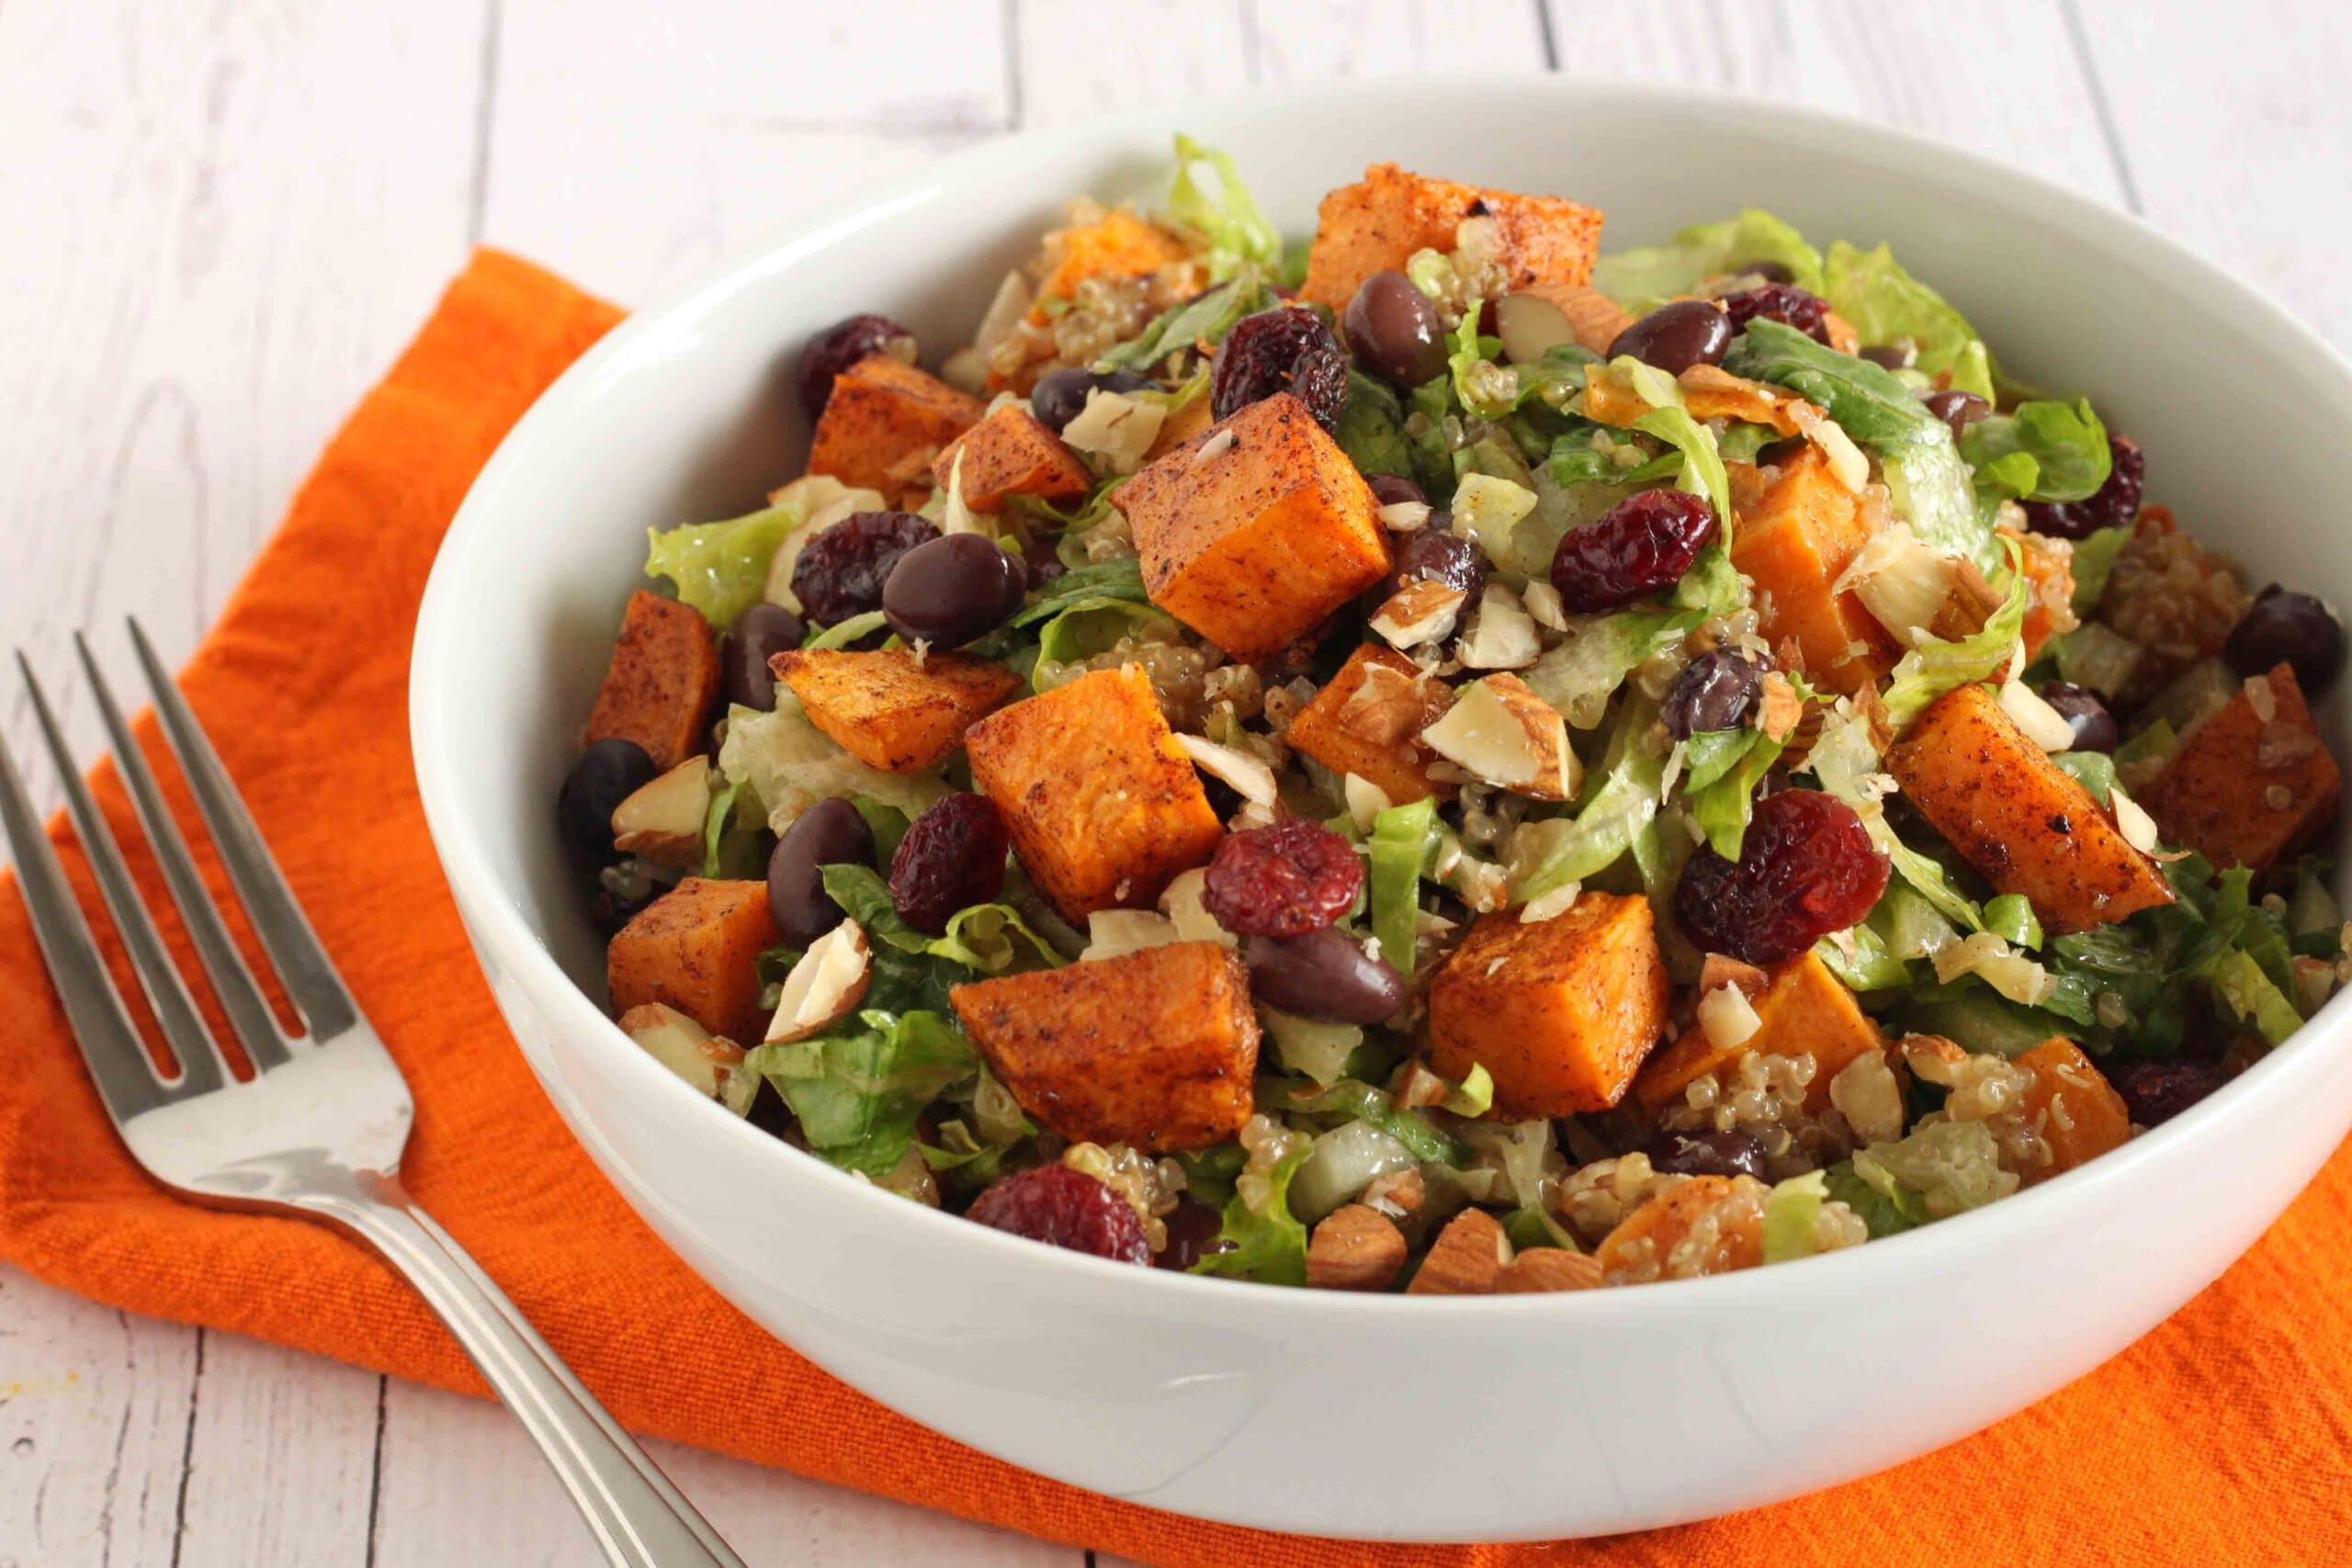 Hearty Vegan Fall Salad by @jesselwellness